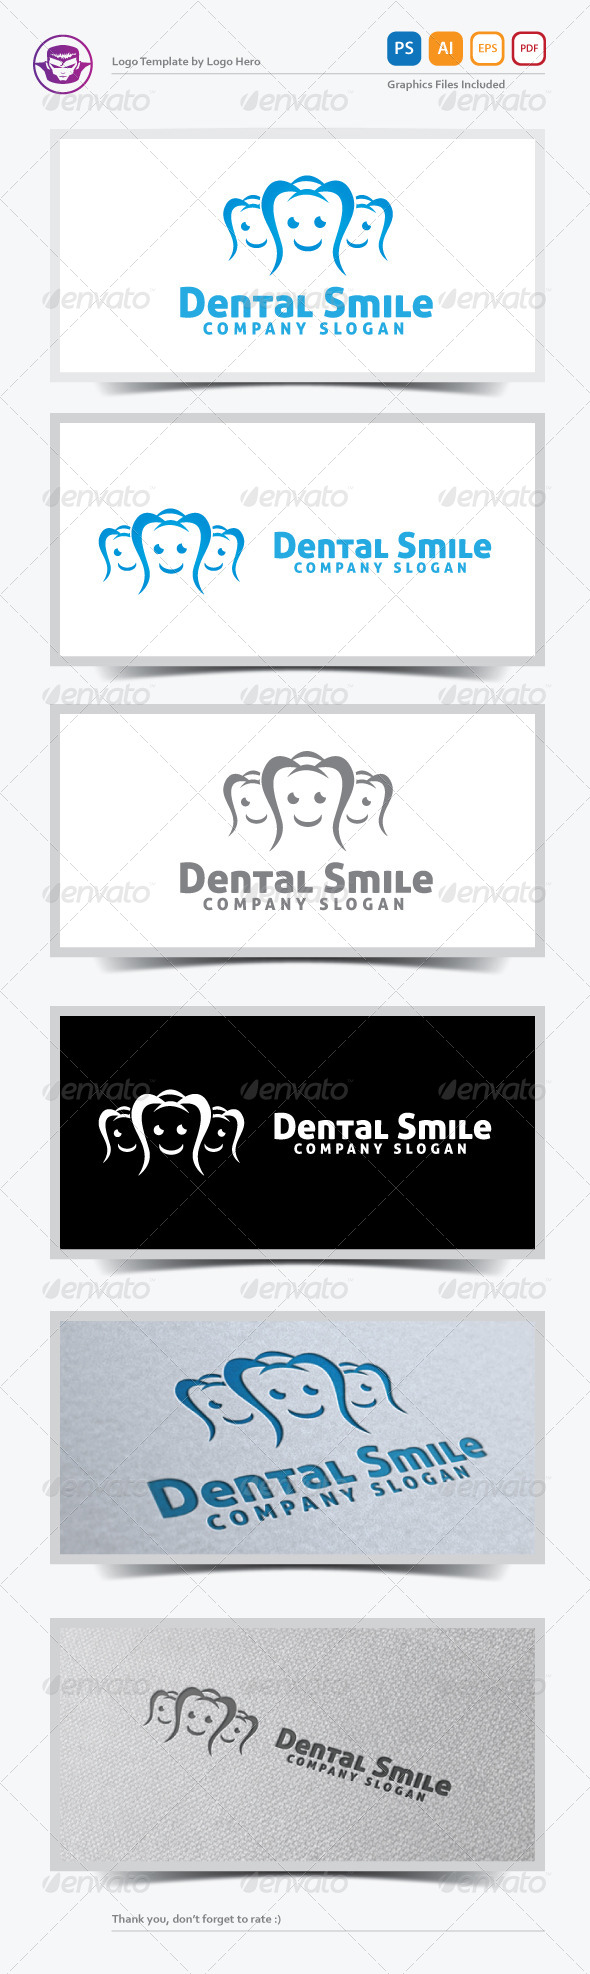 GraphicRiver Dental Smile Logo Template 5583399